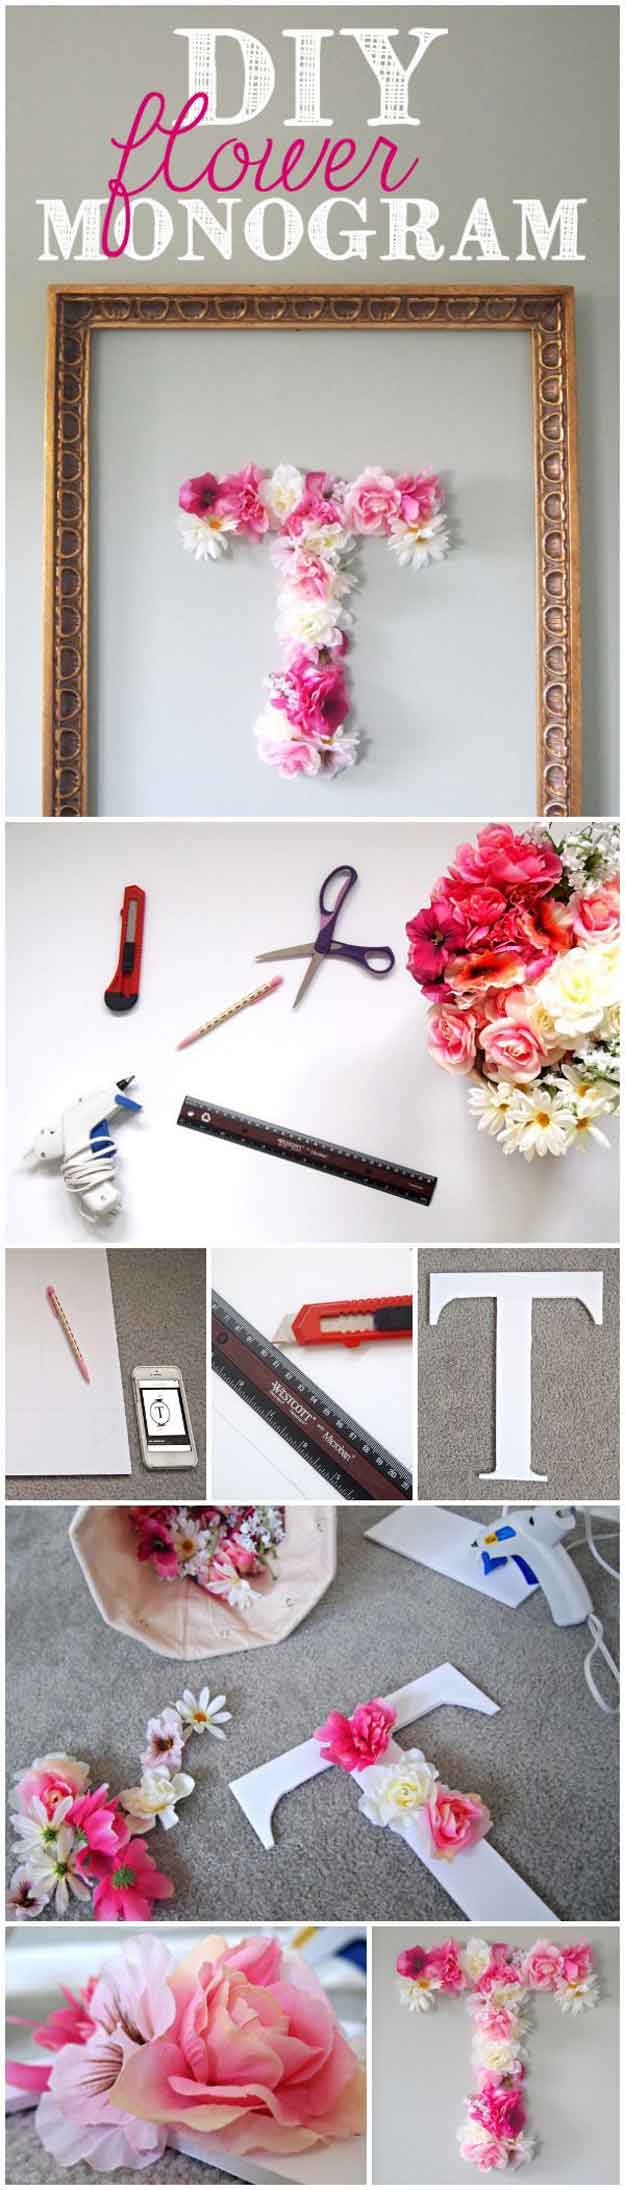 cute diy room decor ideas for teens diy bedroom projects for teenagers diy flower - Cute Teen Room Decor